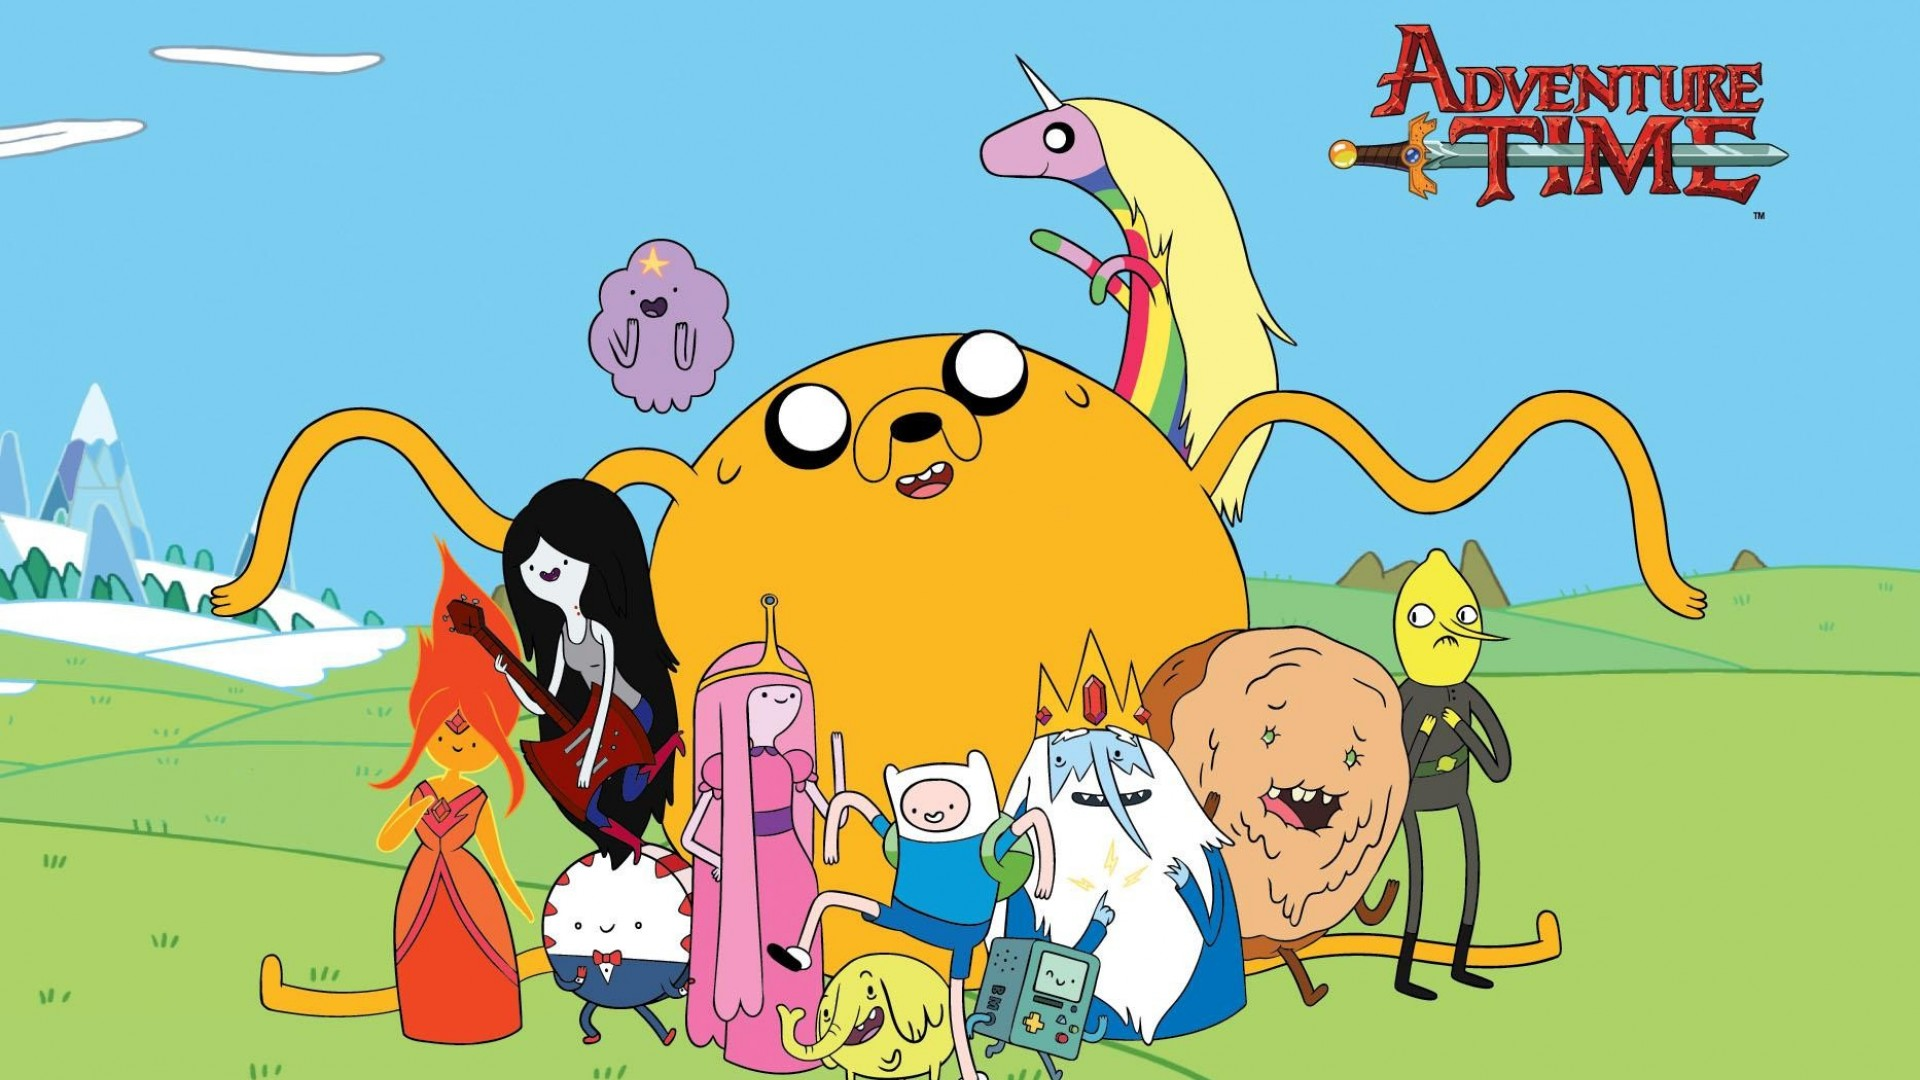 Adventure-Time-Pictures-Images-wallpaper-wpc5801978